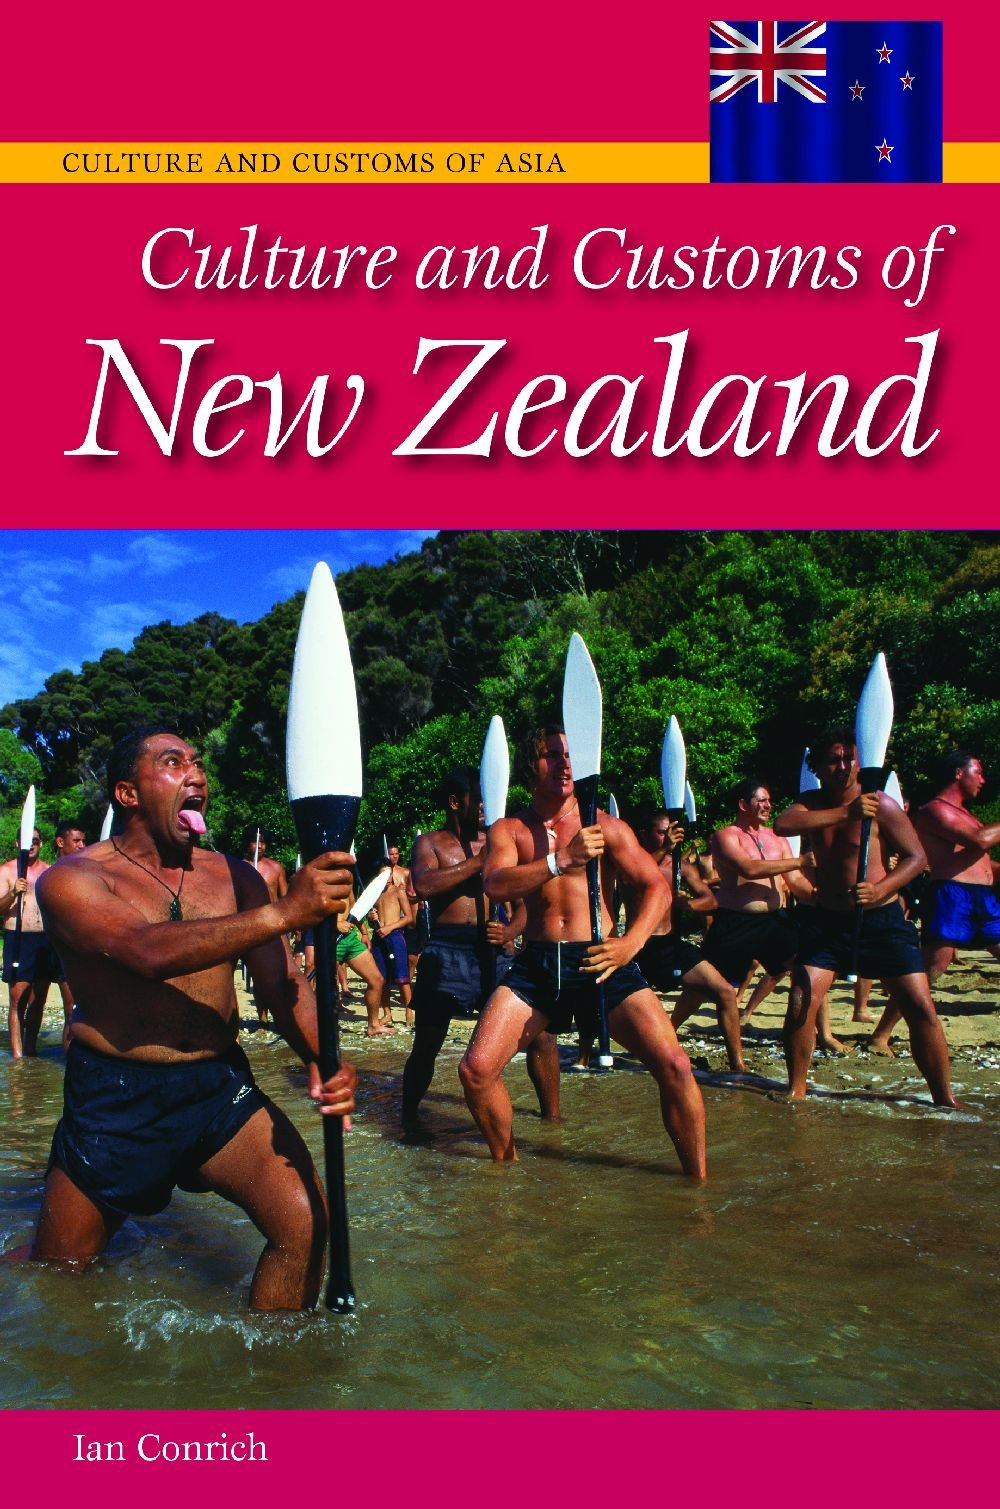 Customs And Cultures Culture And Customs of New